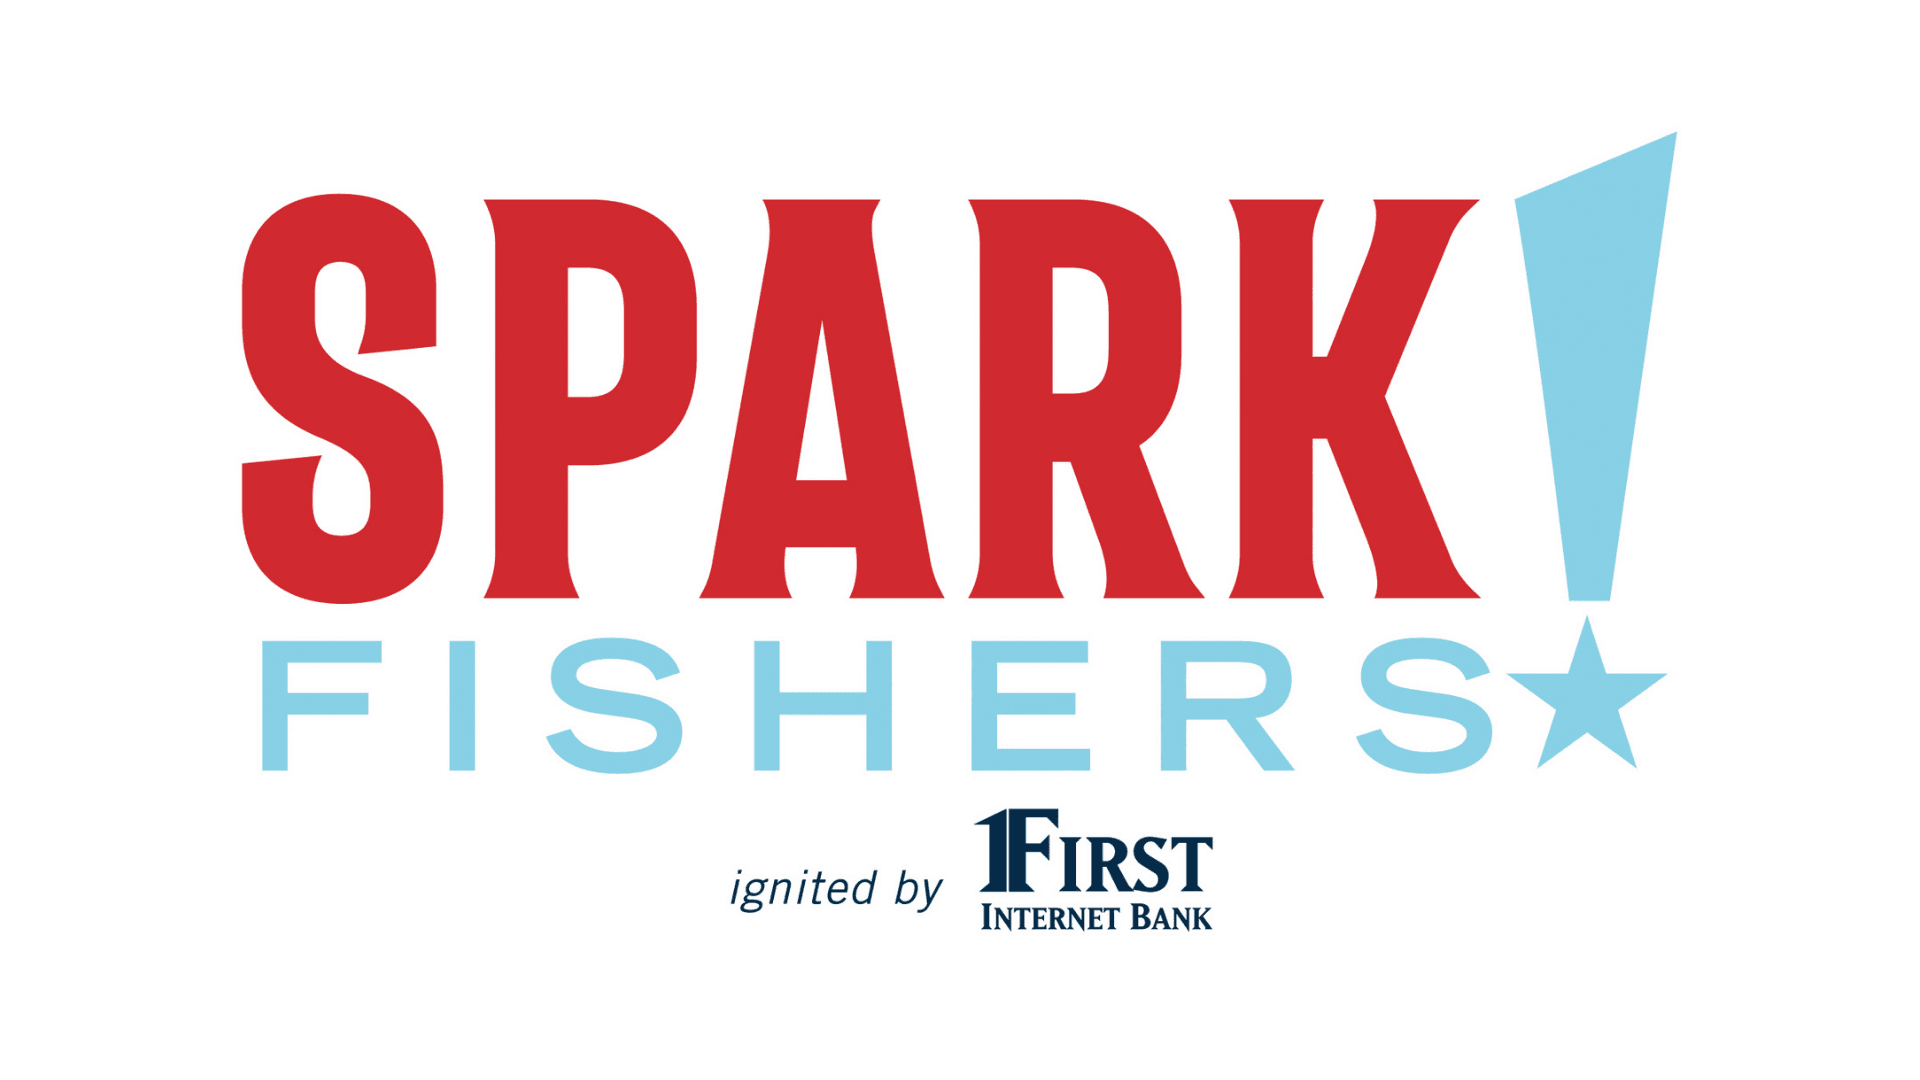 Spark!Fishers ignited by First Internet Bank